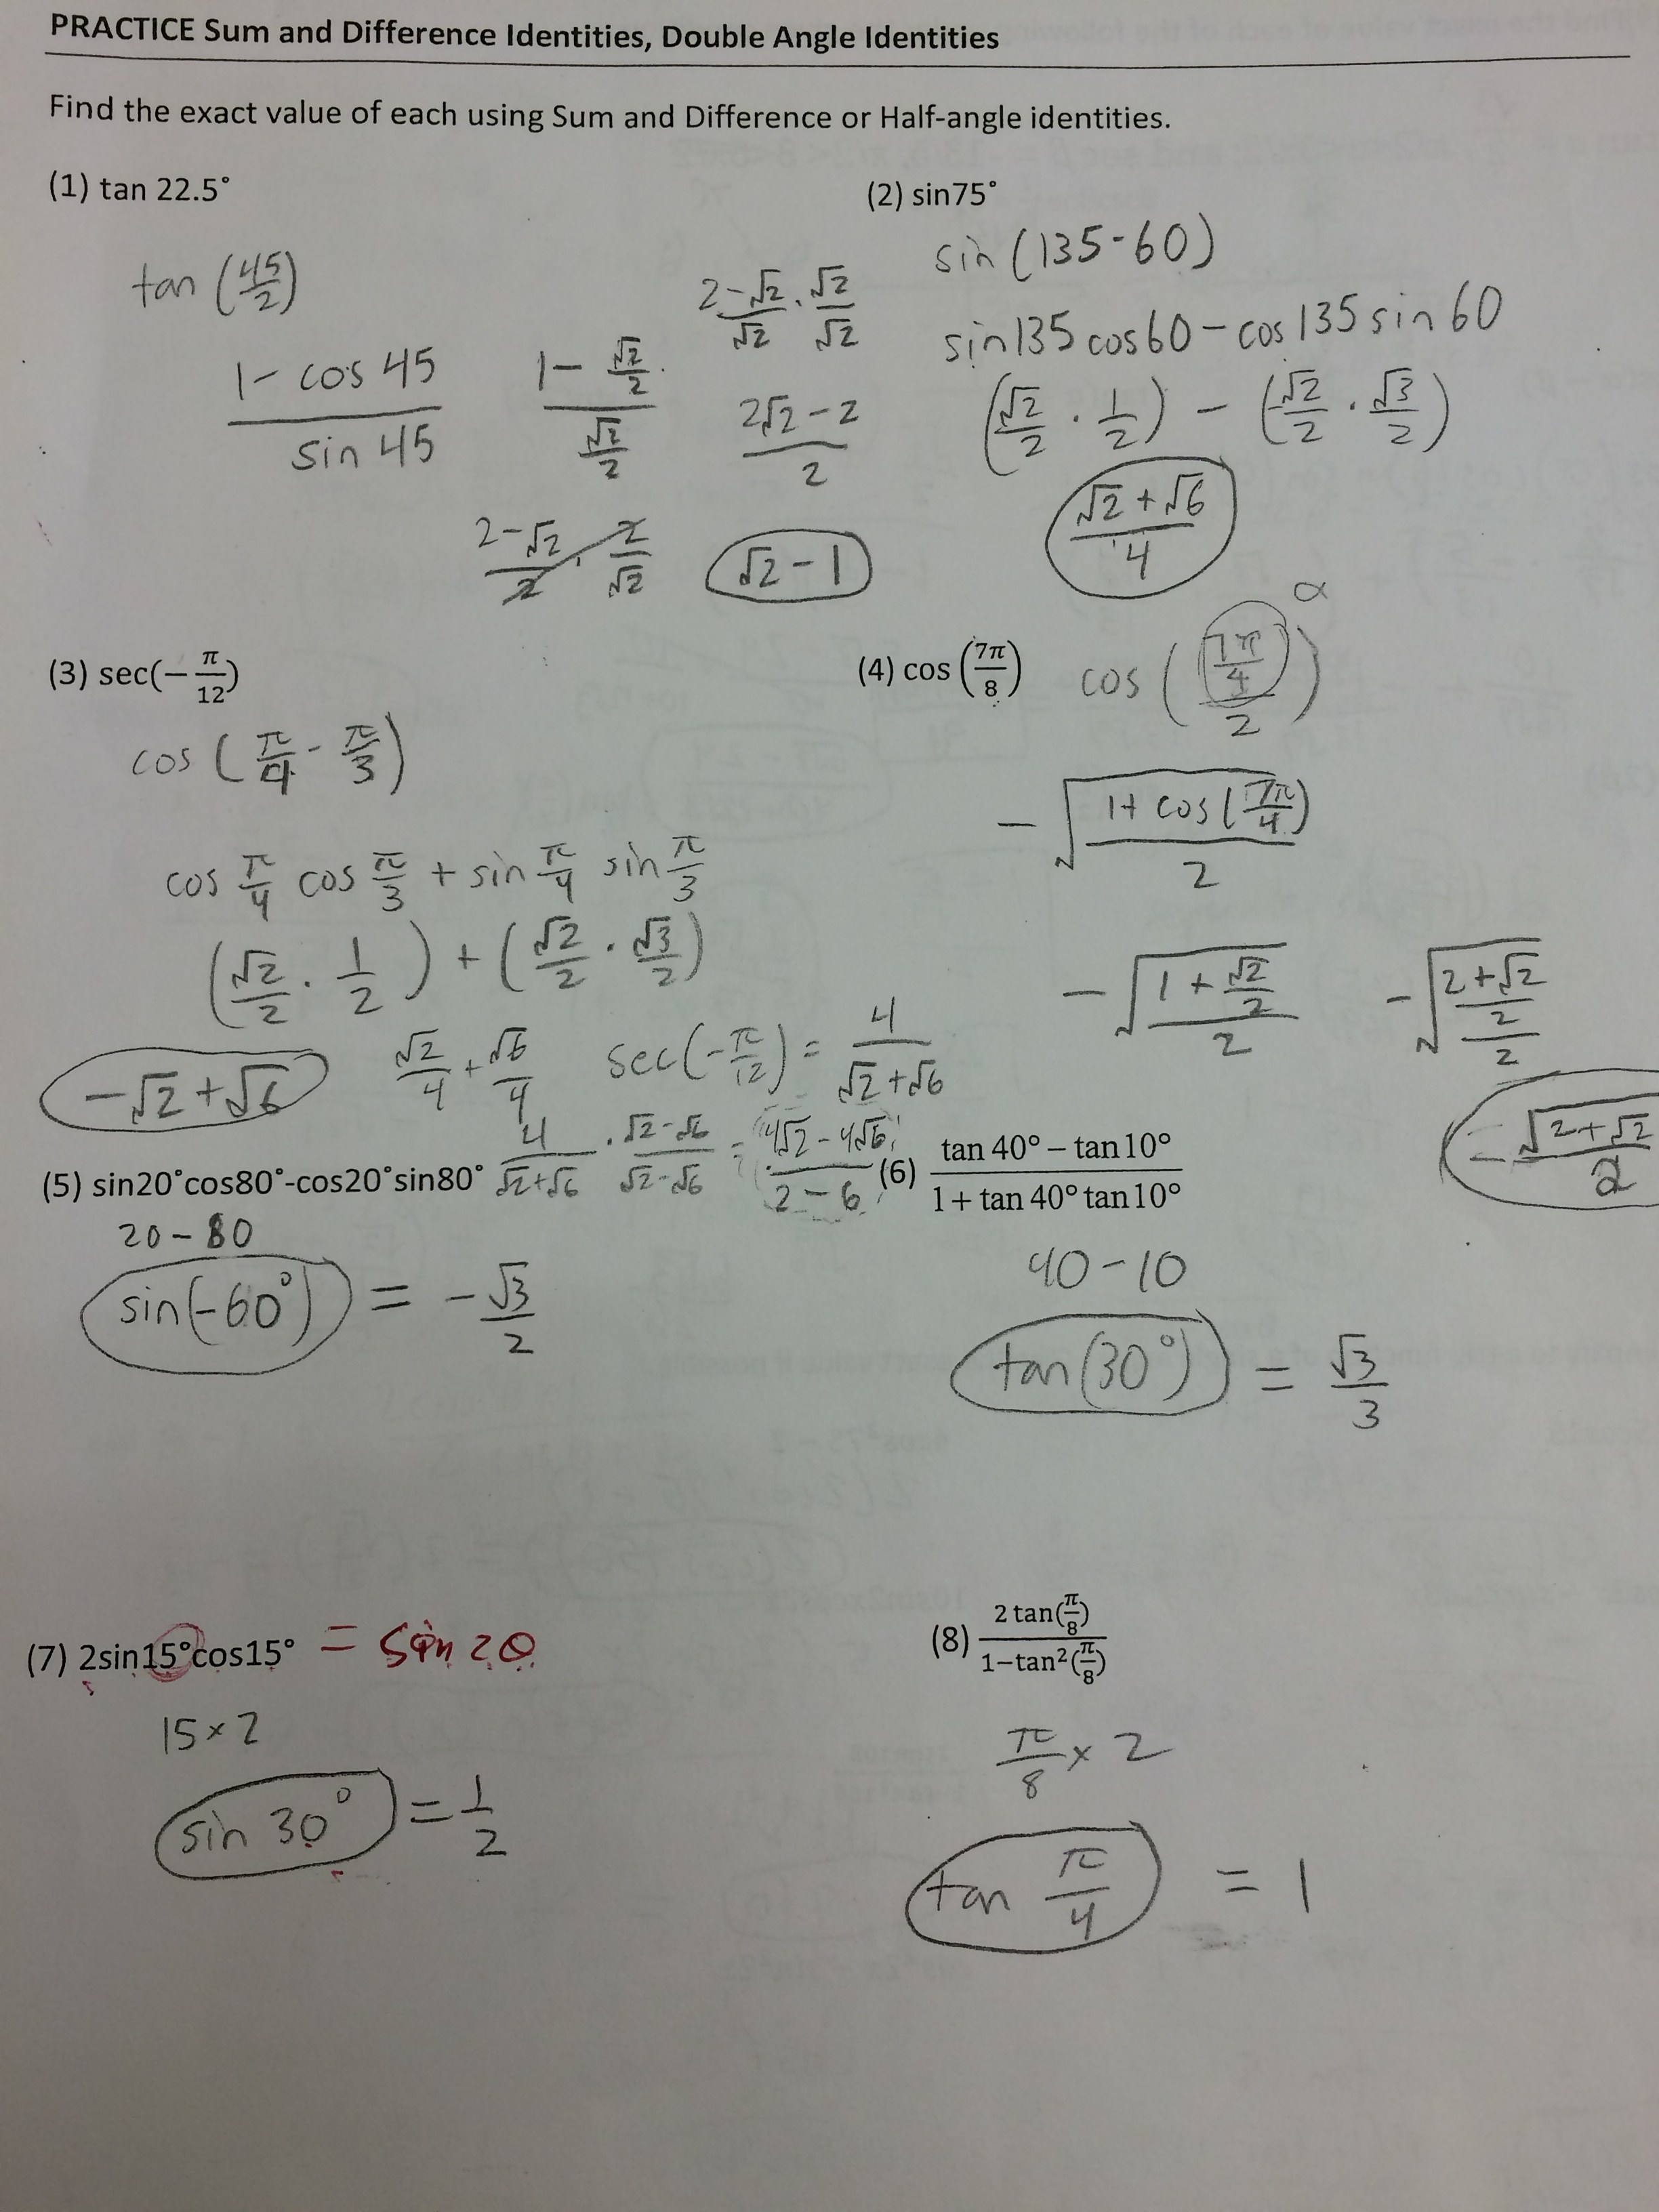 worksheet 5.3 Solving Trig Equations Practice Worksheet 1 Answers clayton valley charter high school practice sum difference double half page 1 key jpg